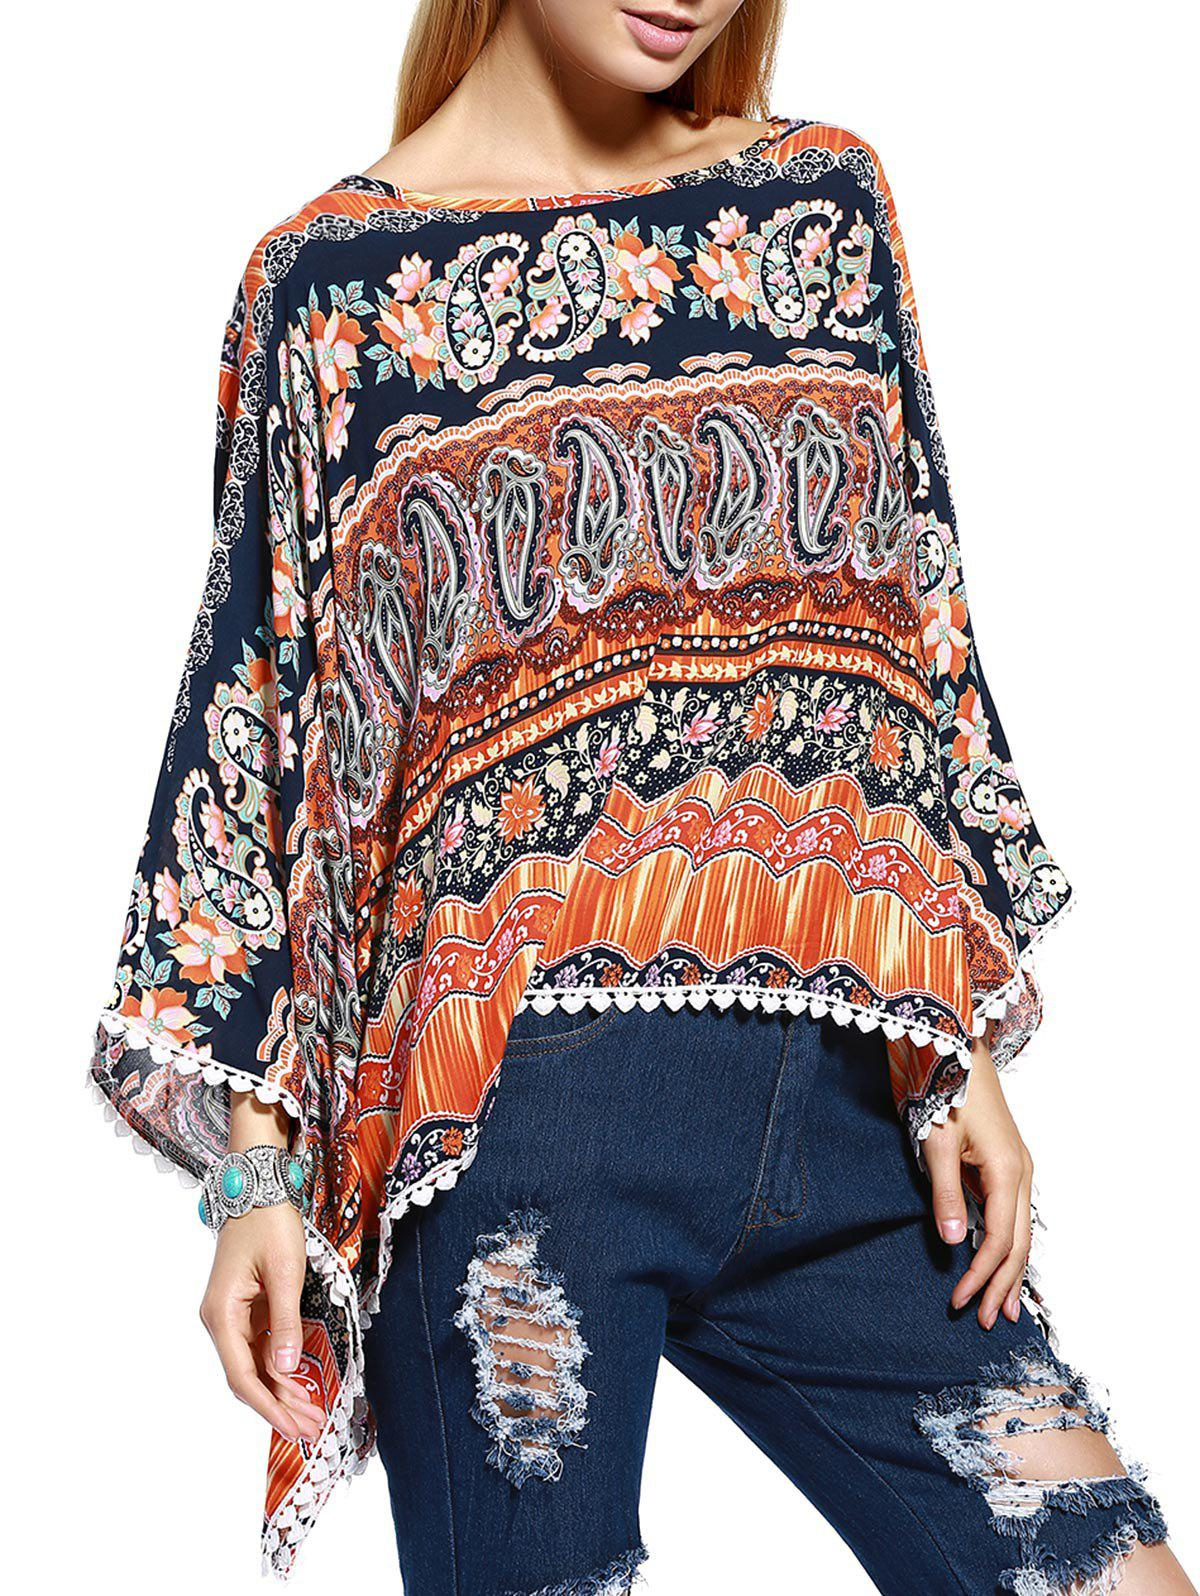 Chic Paisley Floral Print Crochet Trim Women's Blouse - ORANGE ONE SIZE(FIT SIZE XS TO M)